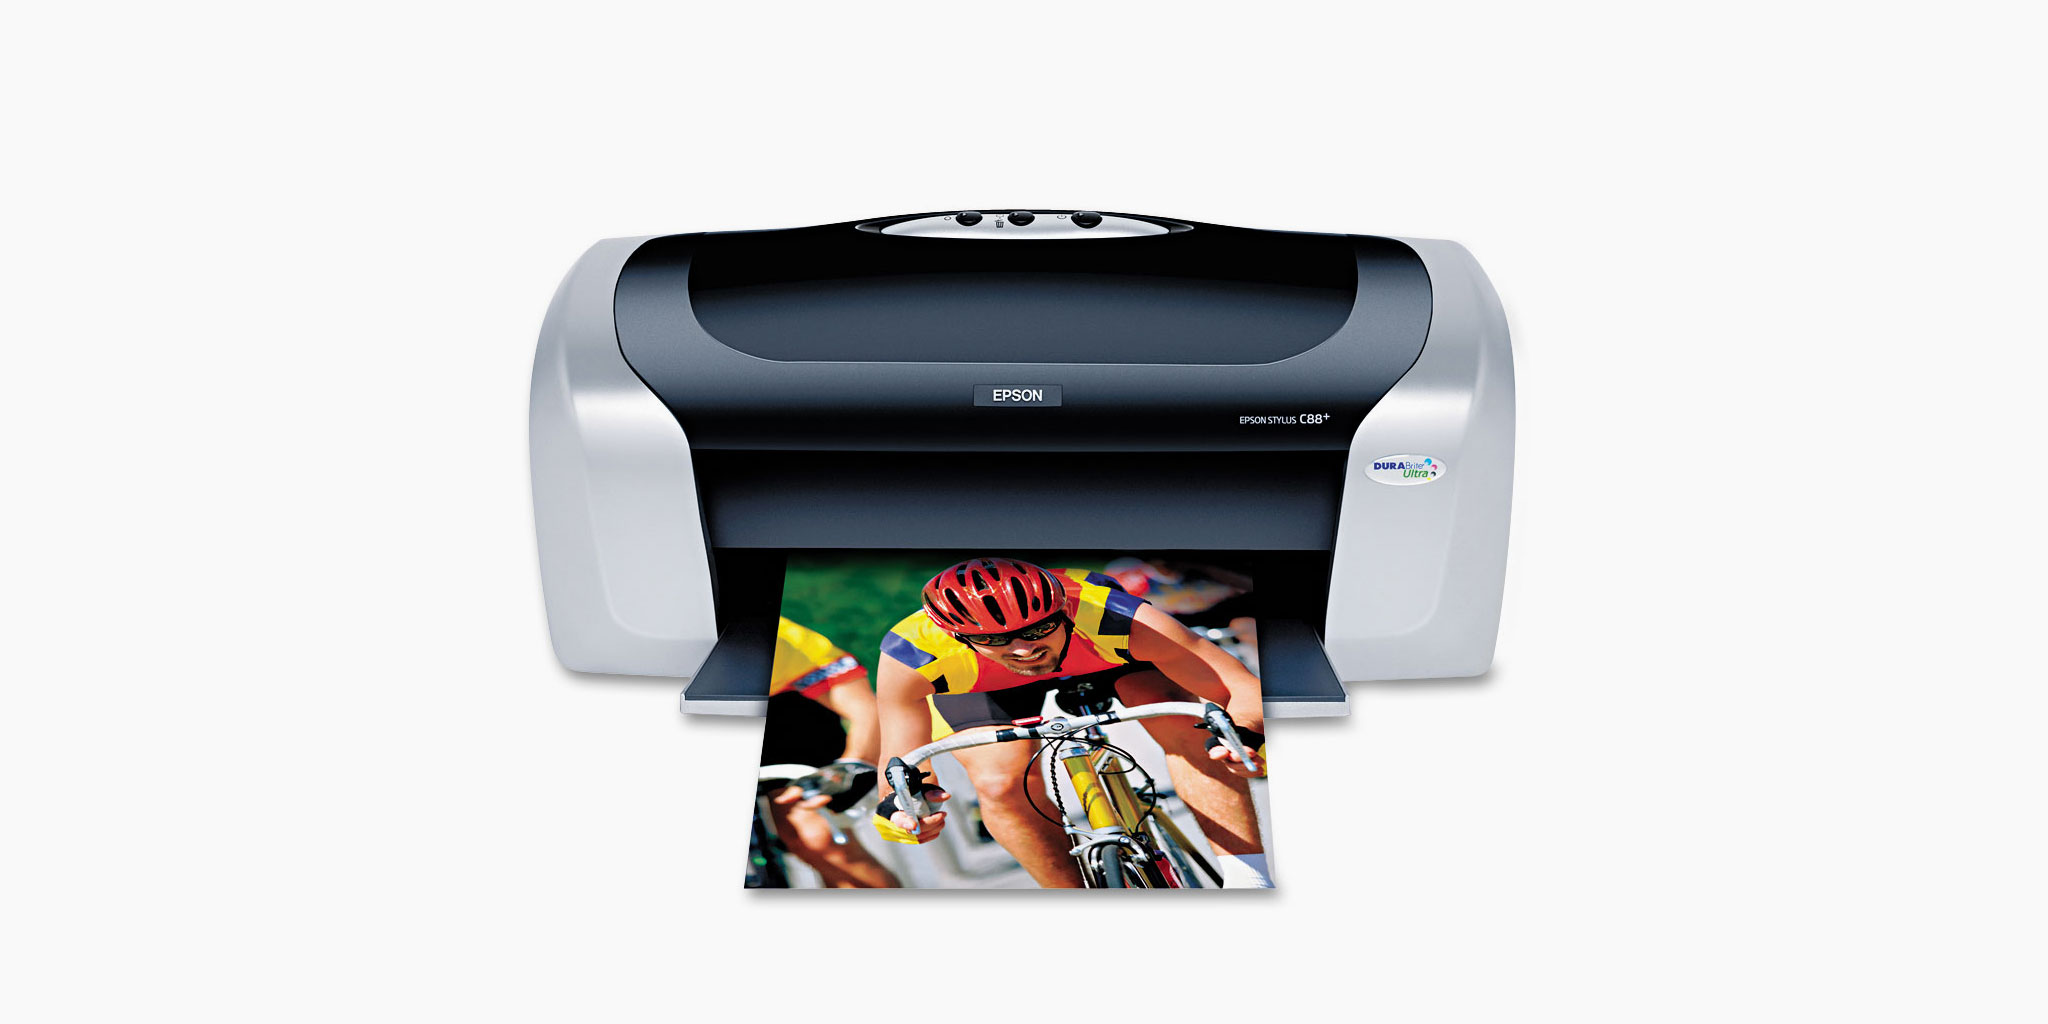 15a937752 The 5 Best Printers for Heat Transfers: Paper, T-Shirts & Other Projects